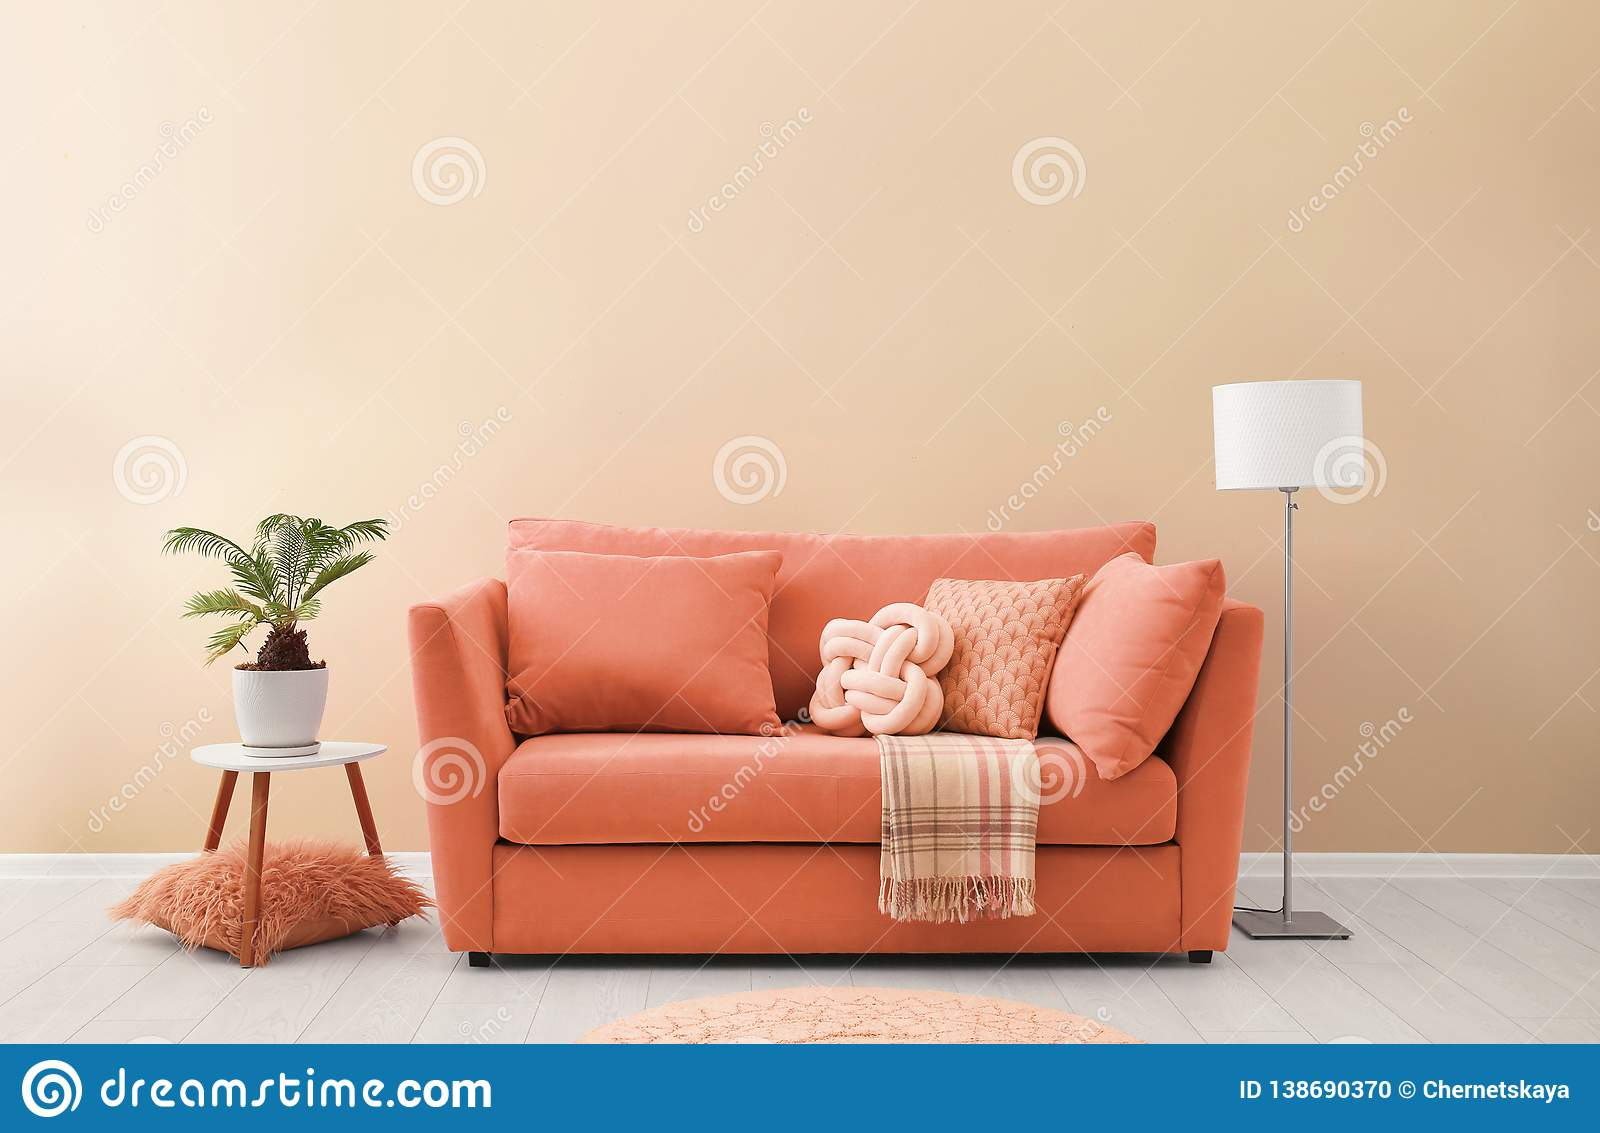 Simple Living Room Interior With Modern Sofa Near Color Wall ...